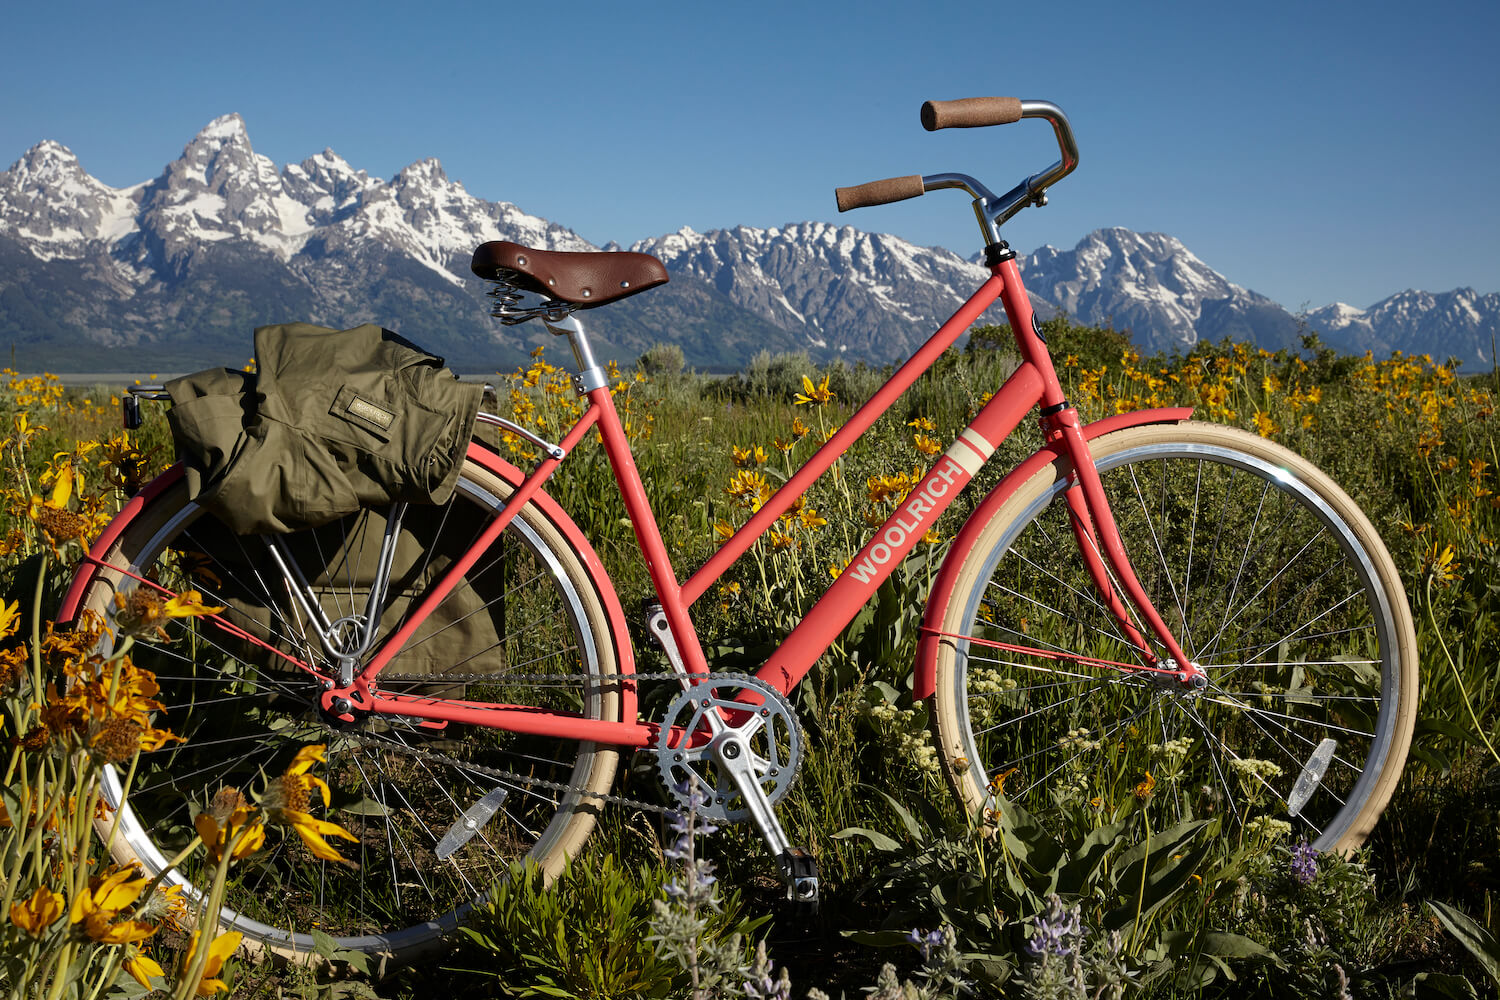 Bike in Tetons